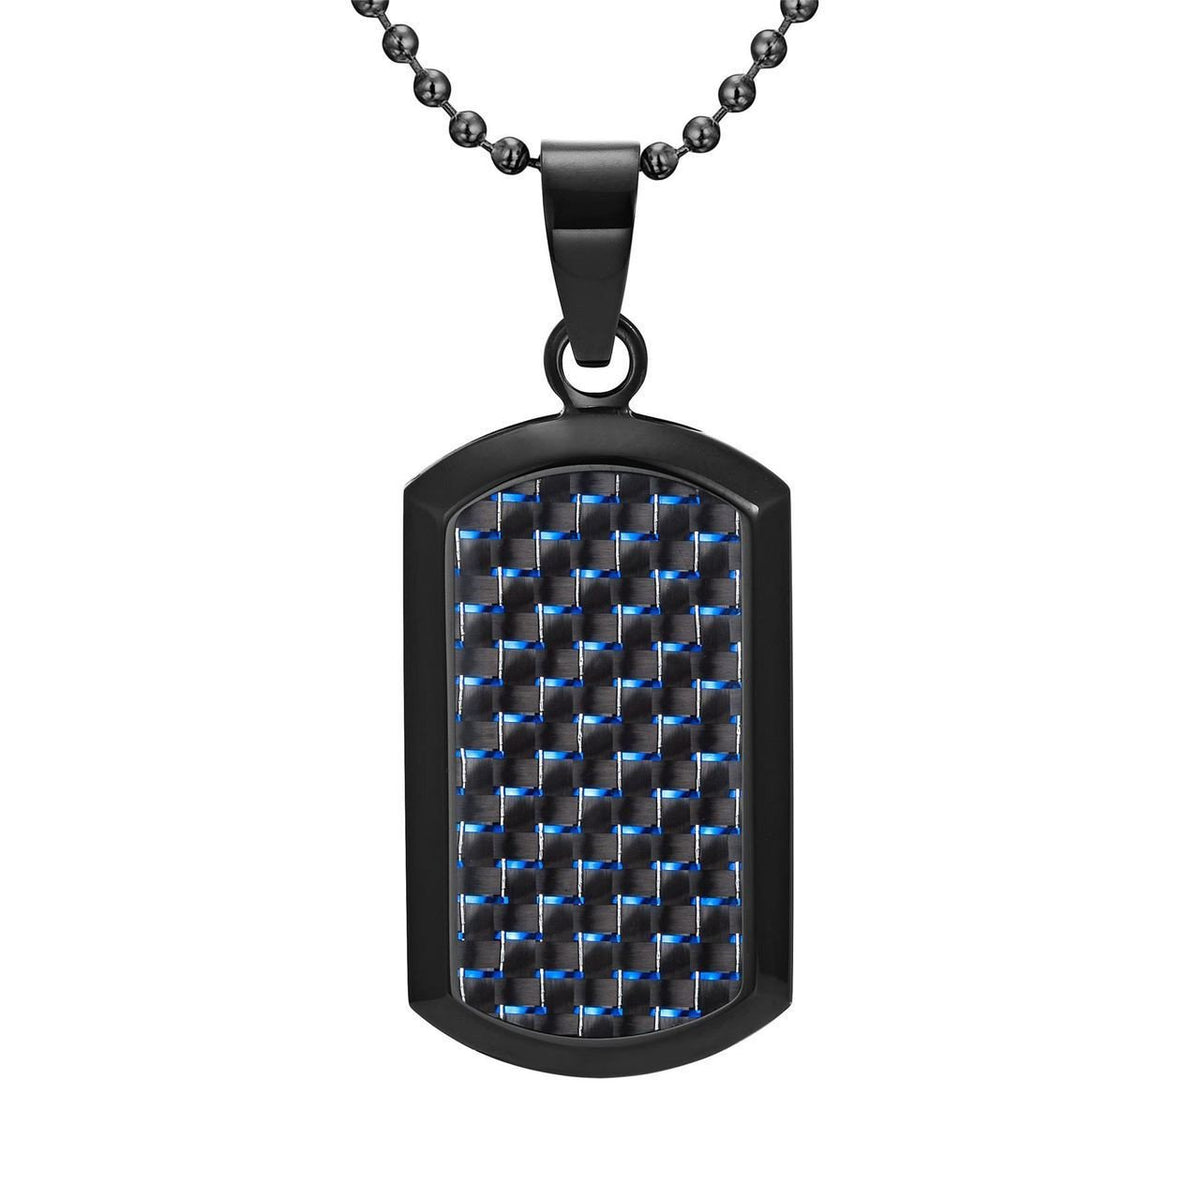 Willis Judd Men's Black Stainless Steel Dog Tag Pendant Engraved US Marine Latin Semper Fidelis with Blue Carbon fibre and Necklace with Gift Pouch